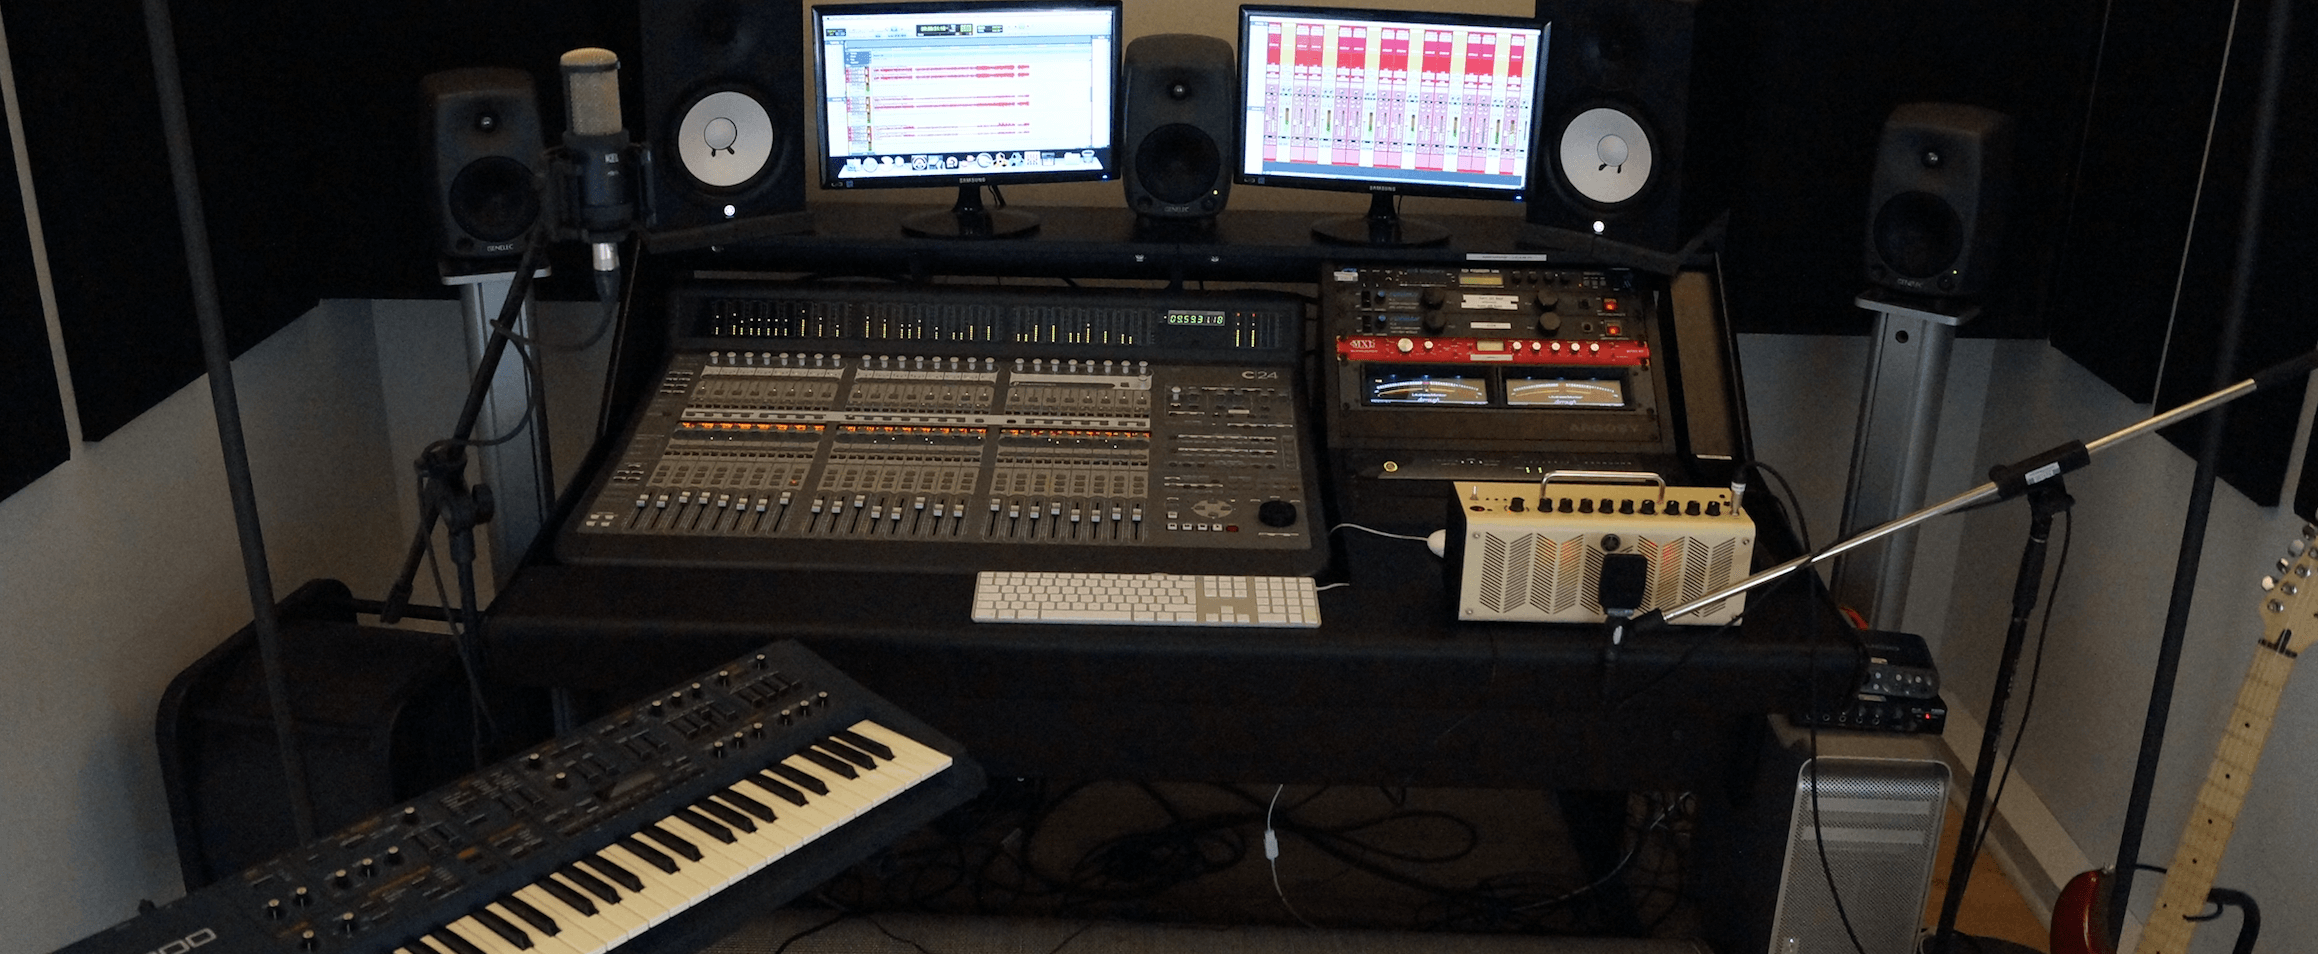 CHECKLIST: How to choose your next music producing hardware or software